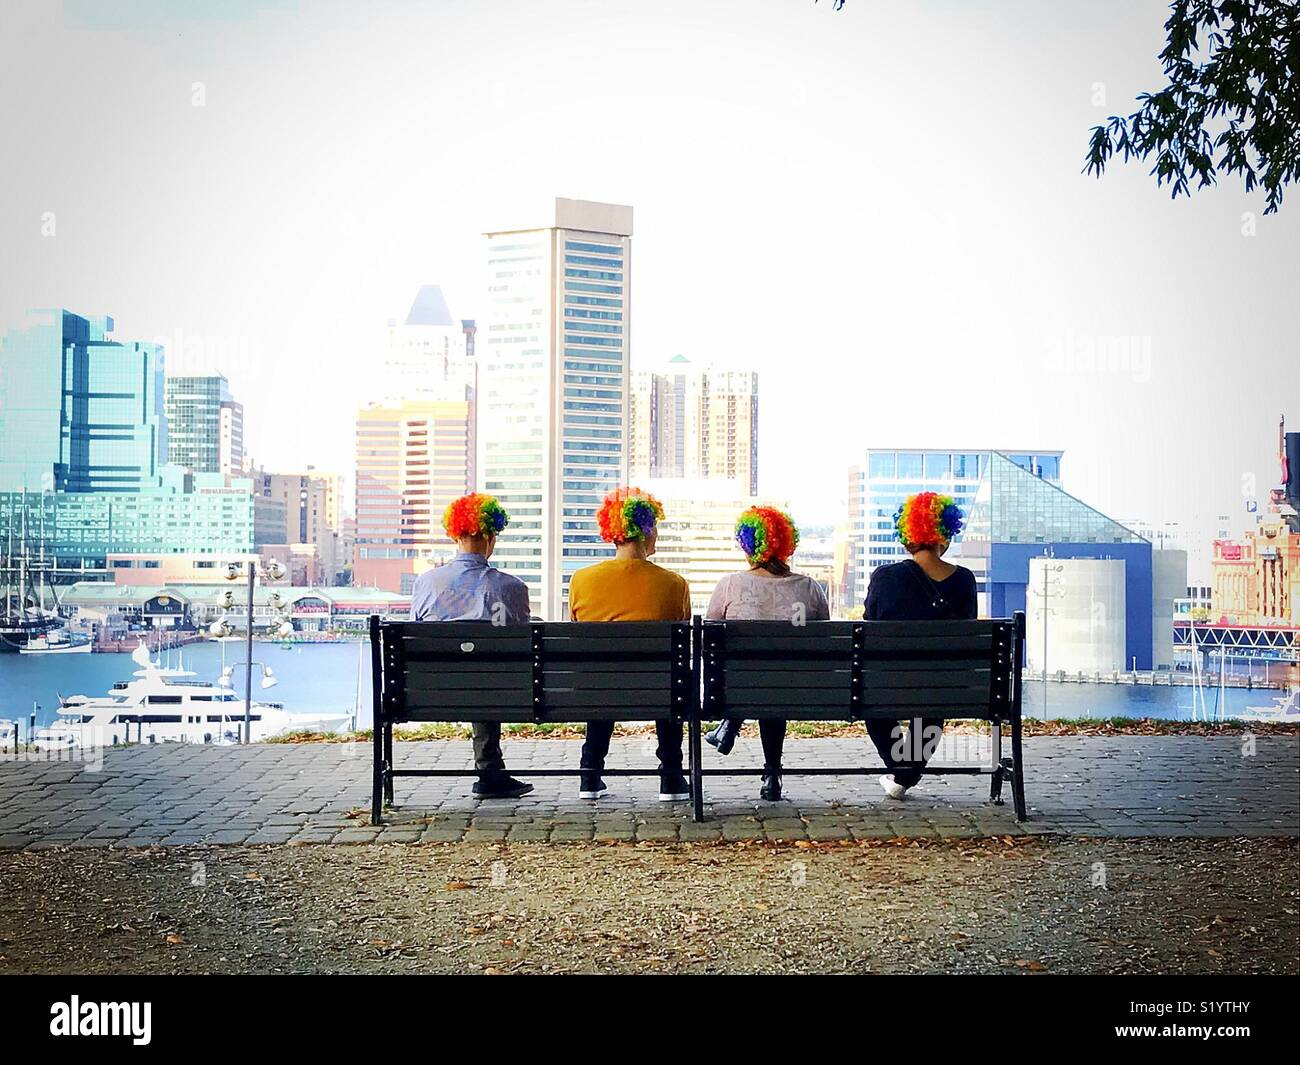 Clowns in Baltimore - Stock Image